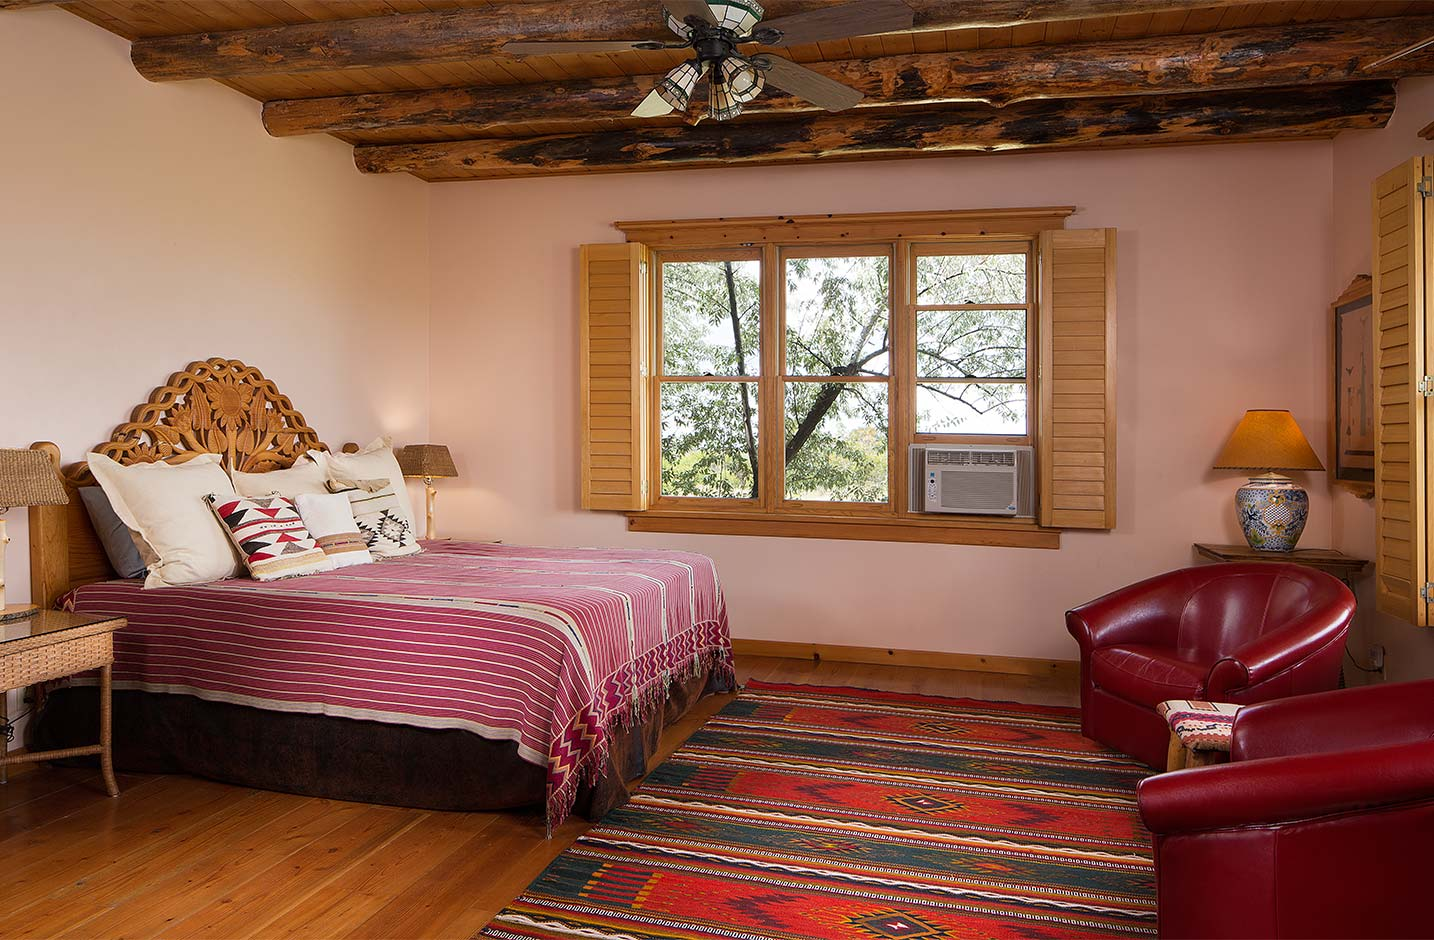 King bed in a spacious bedroom with wooden floors